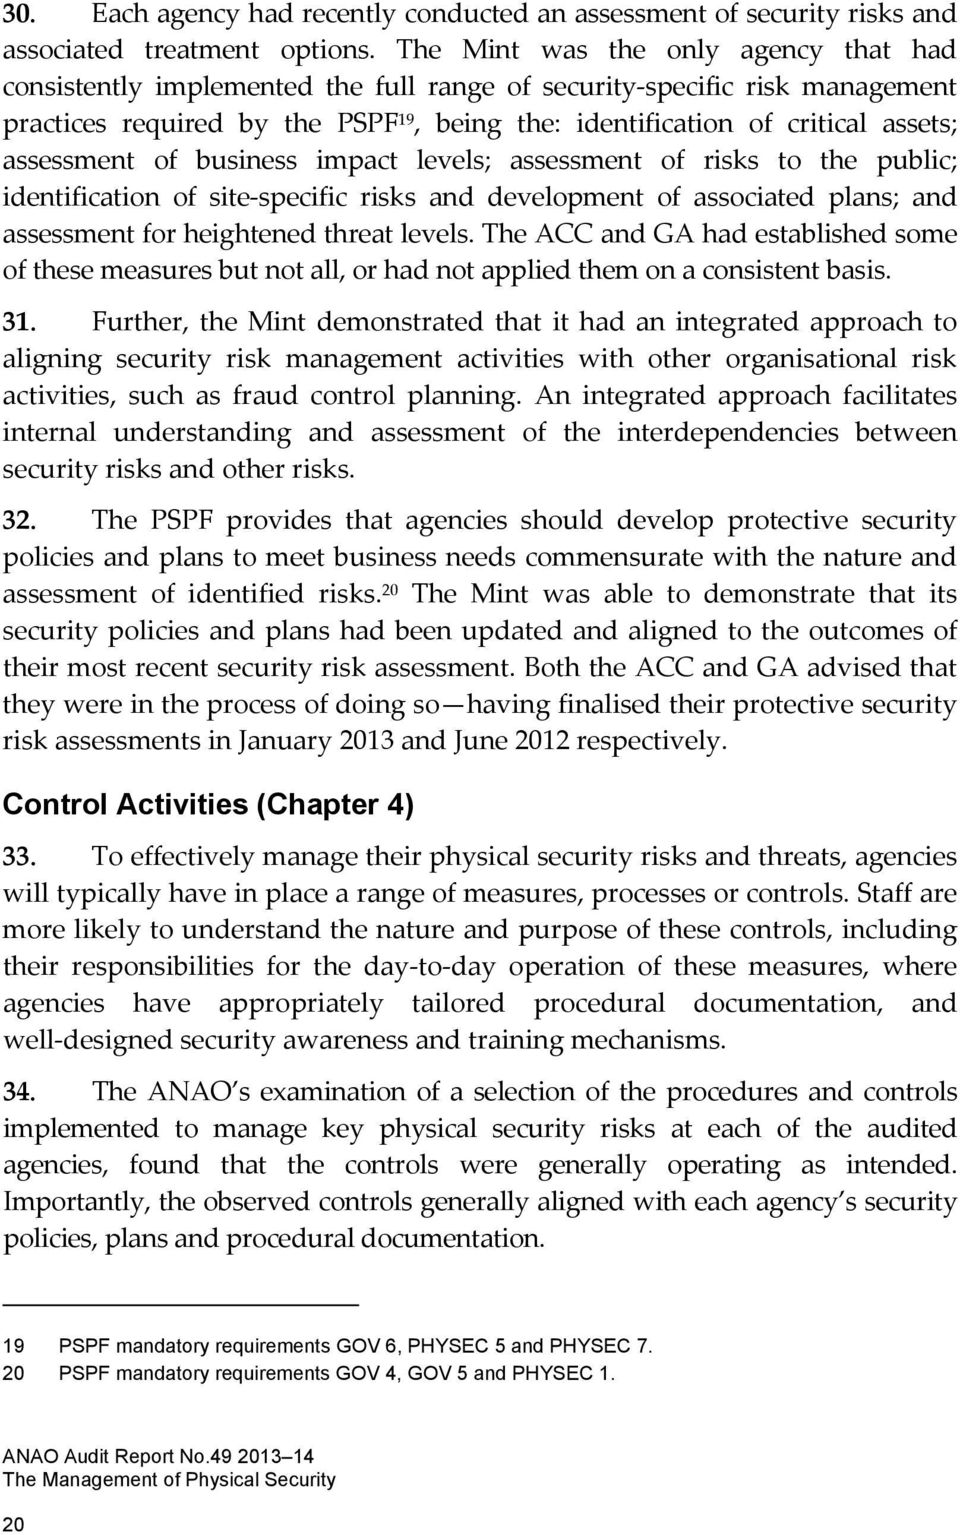 assessment of business impact levels; assessment of risks to the public; identification of site specific risks and development of associated plans; and assessment for heightened threat levels.